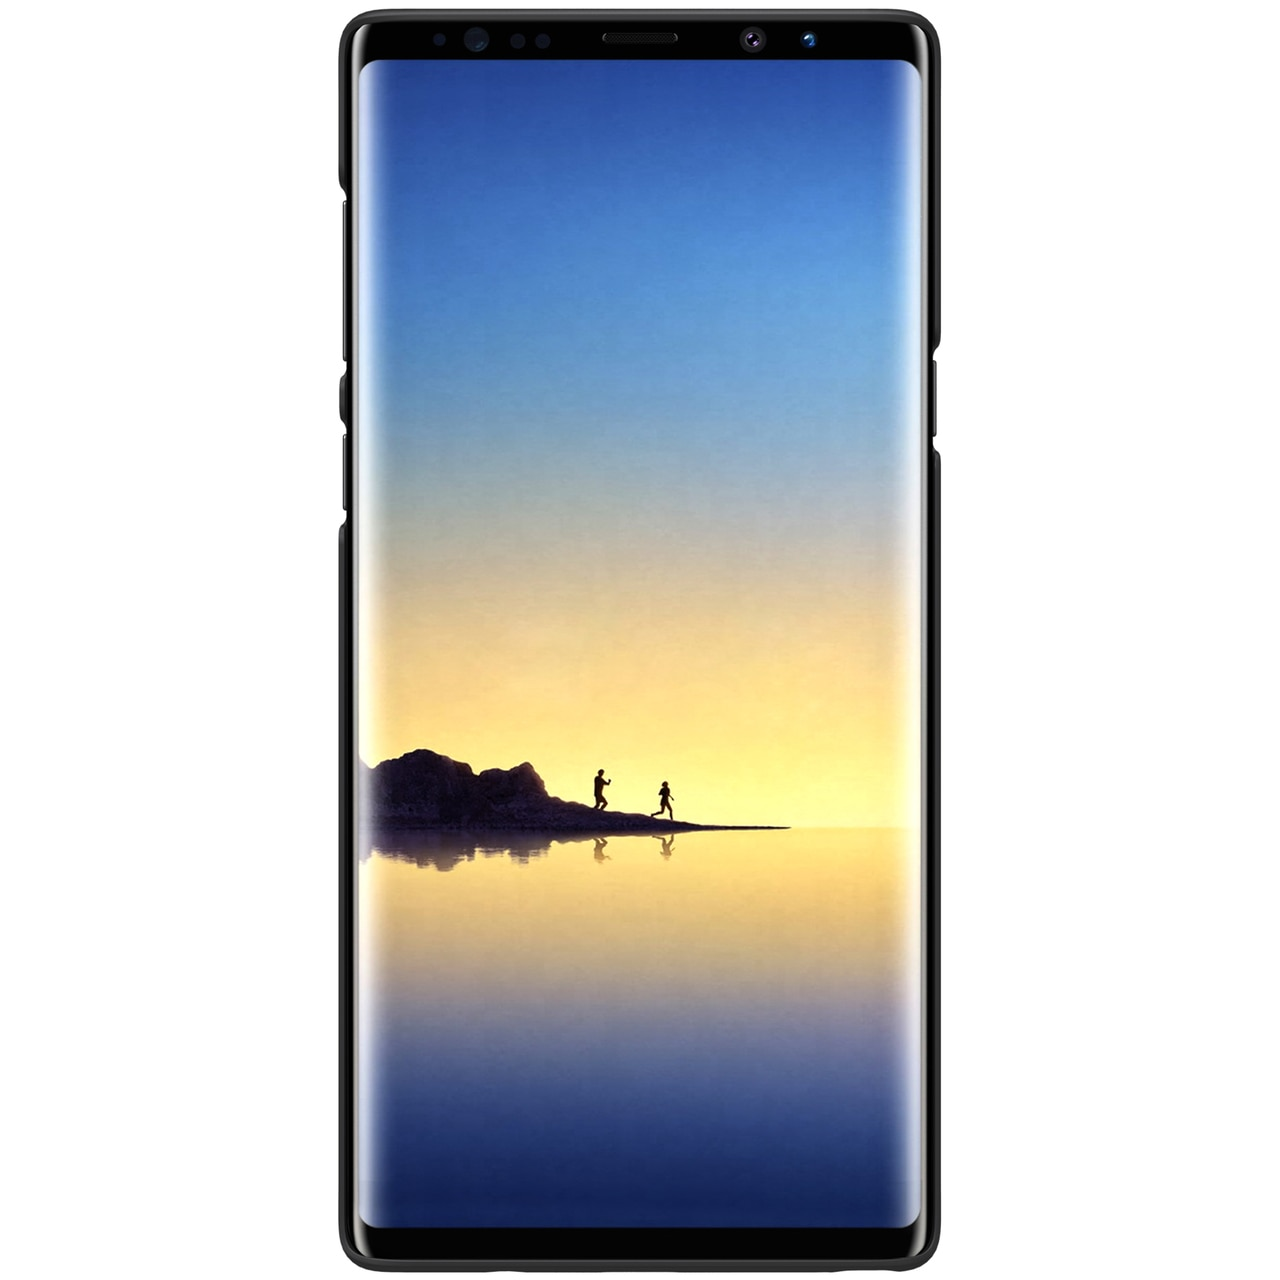 Samsung Note 9 Frosted Shield Back Cover (with FREE Screen Protector) by Nillkin - Black